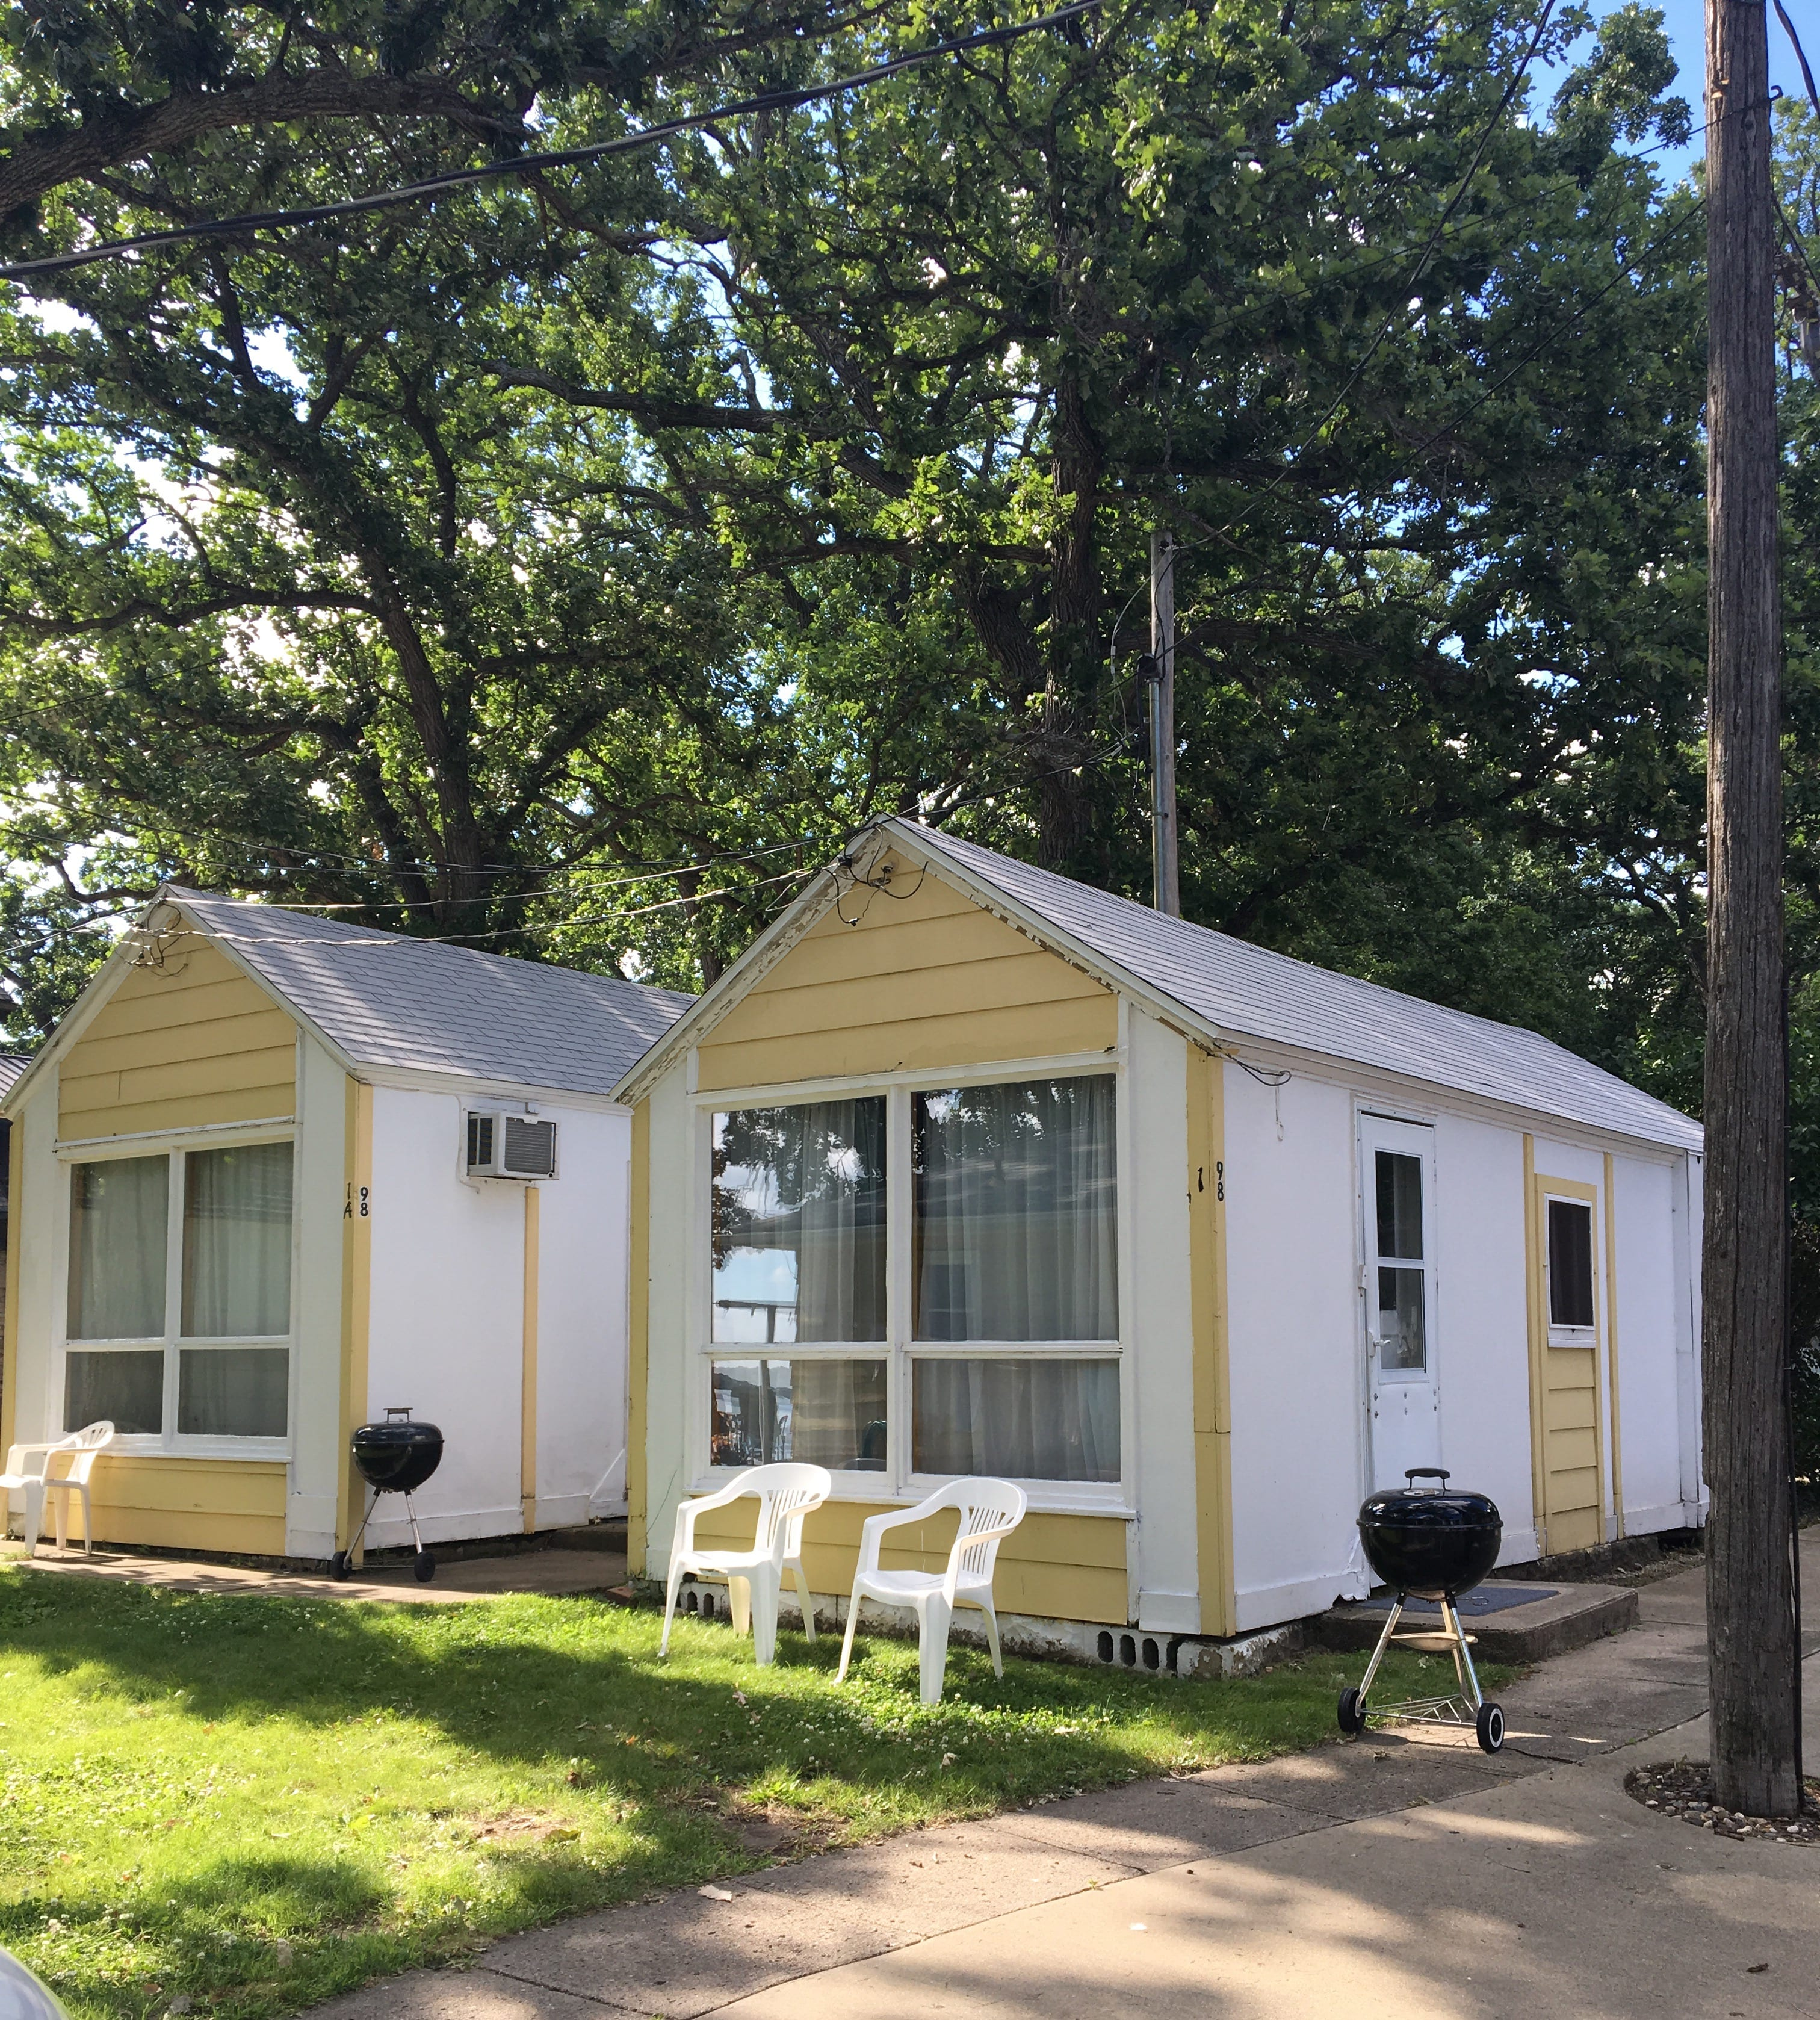 the best inn rentals photograph iowa on cabin lake okoboji cabins pics spirit of fresh images pinterest inspirational